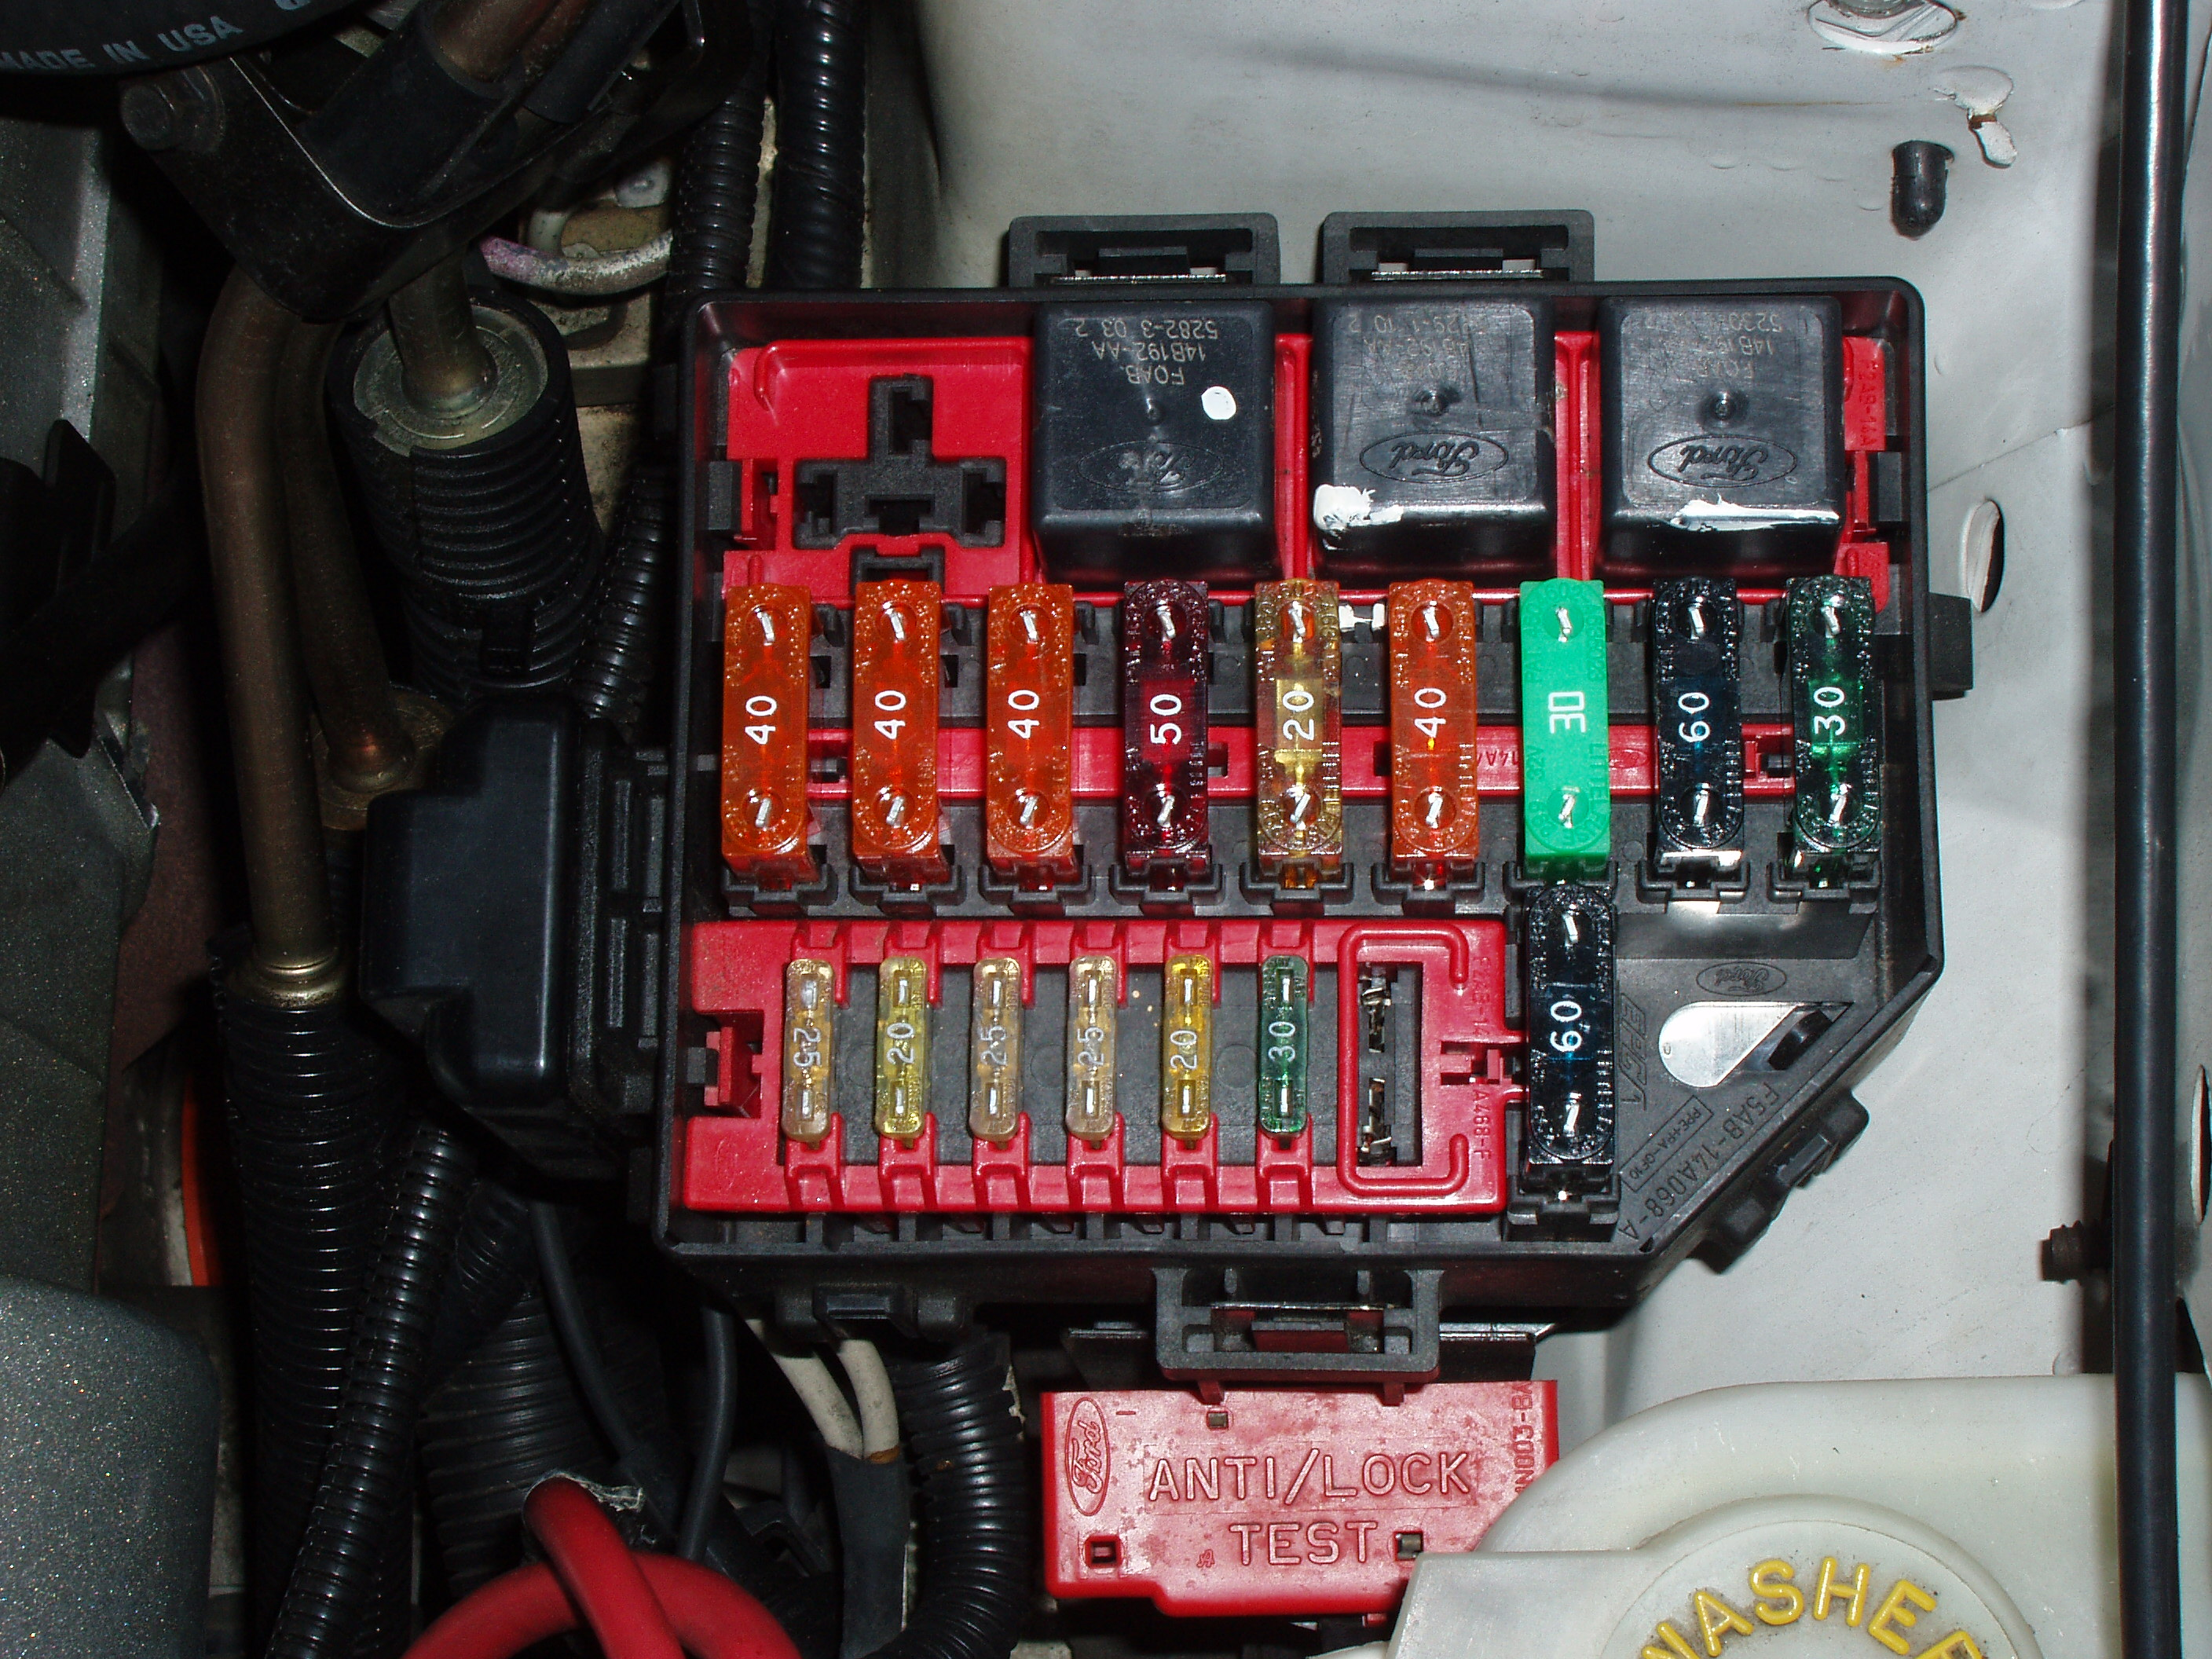 2007 Mustang Fuse Box Wiring Library House Together With Distribution Board Diagram Diagrams Ford Gt 1996 To 2014 Why Is Abs Light On Mustangforums 2004